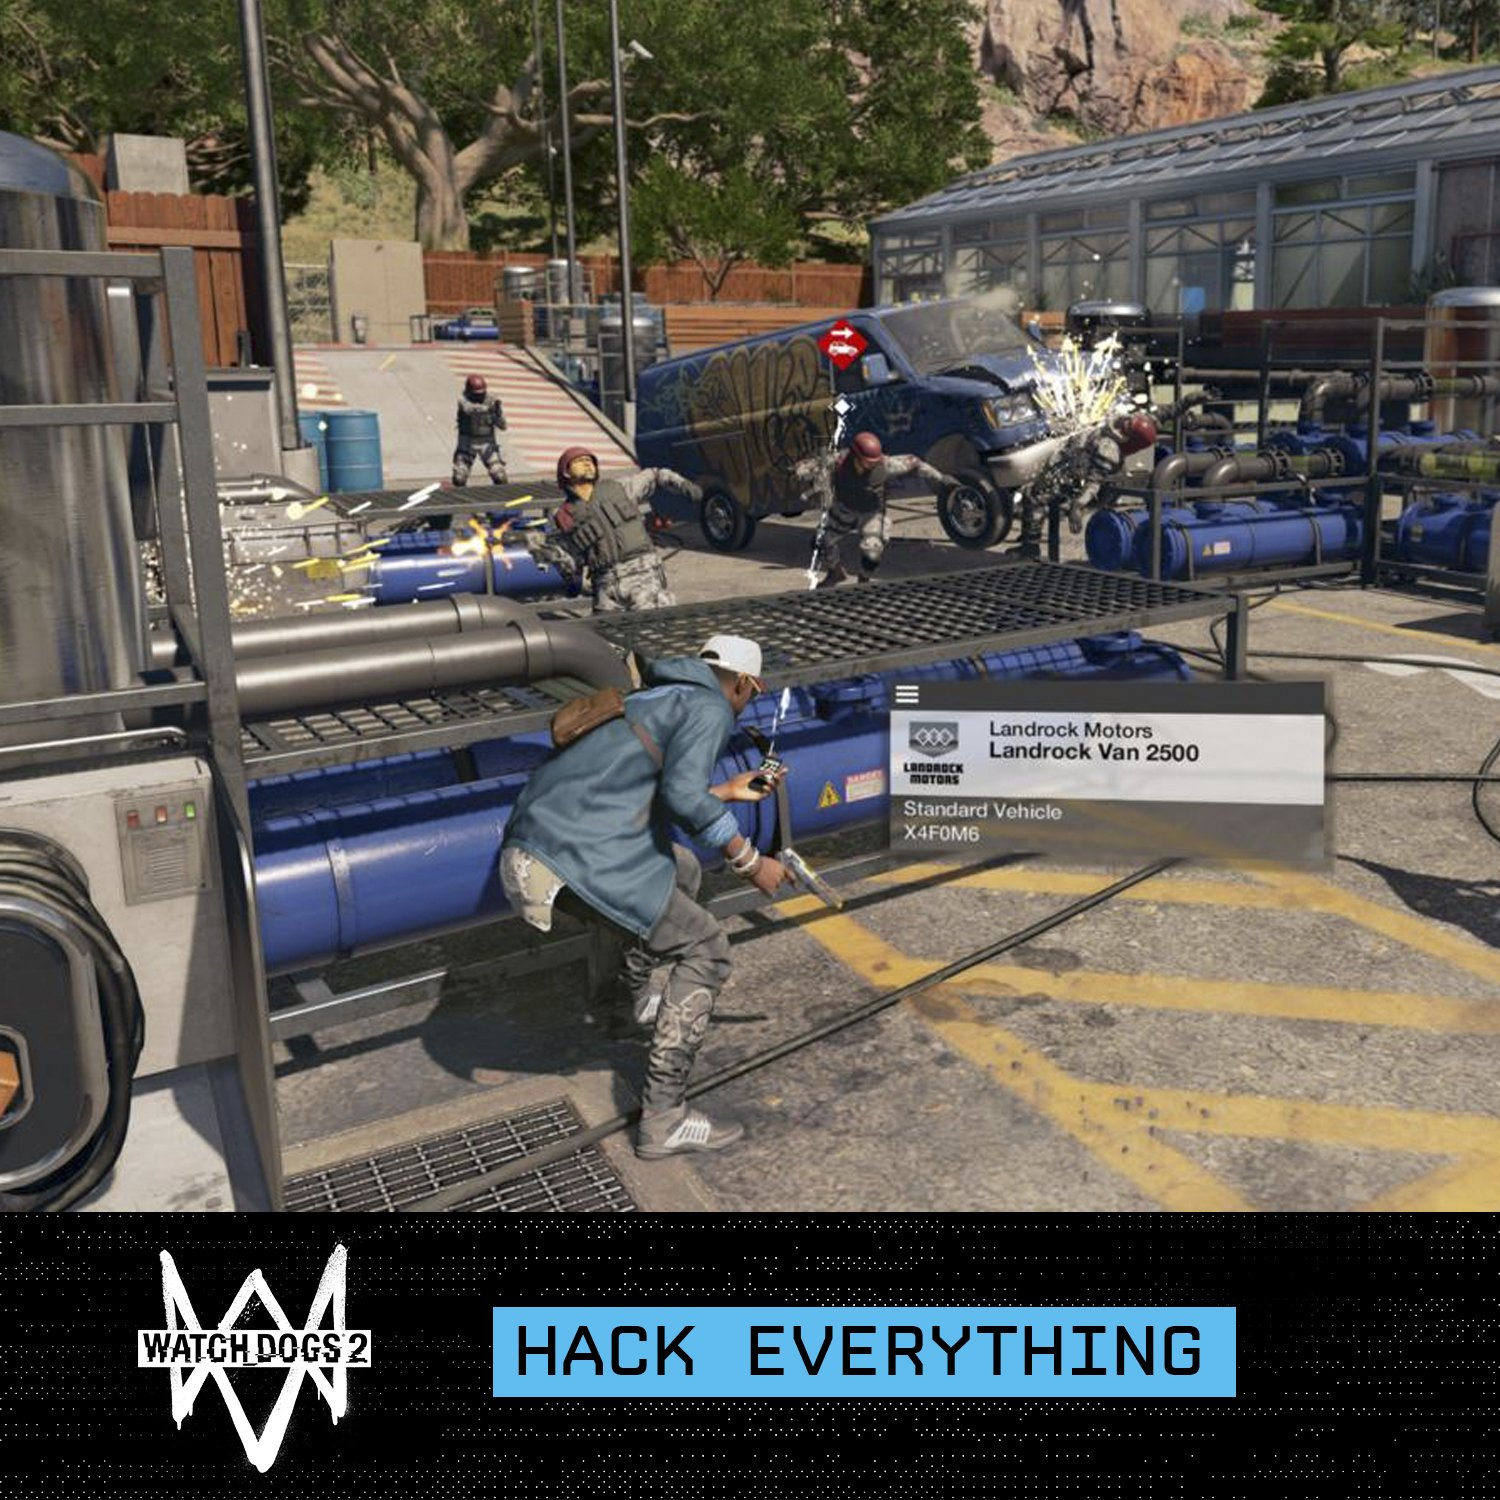 Watch Dogs 2: Deluxe Edition (Includes Extra Content) - PlayStation 4  Ubisoft